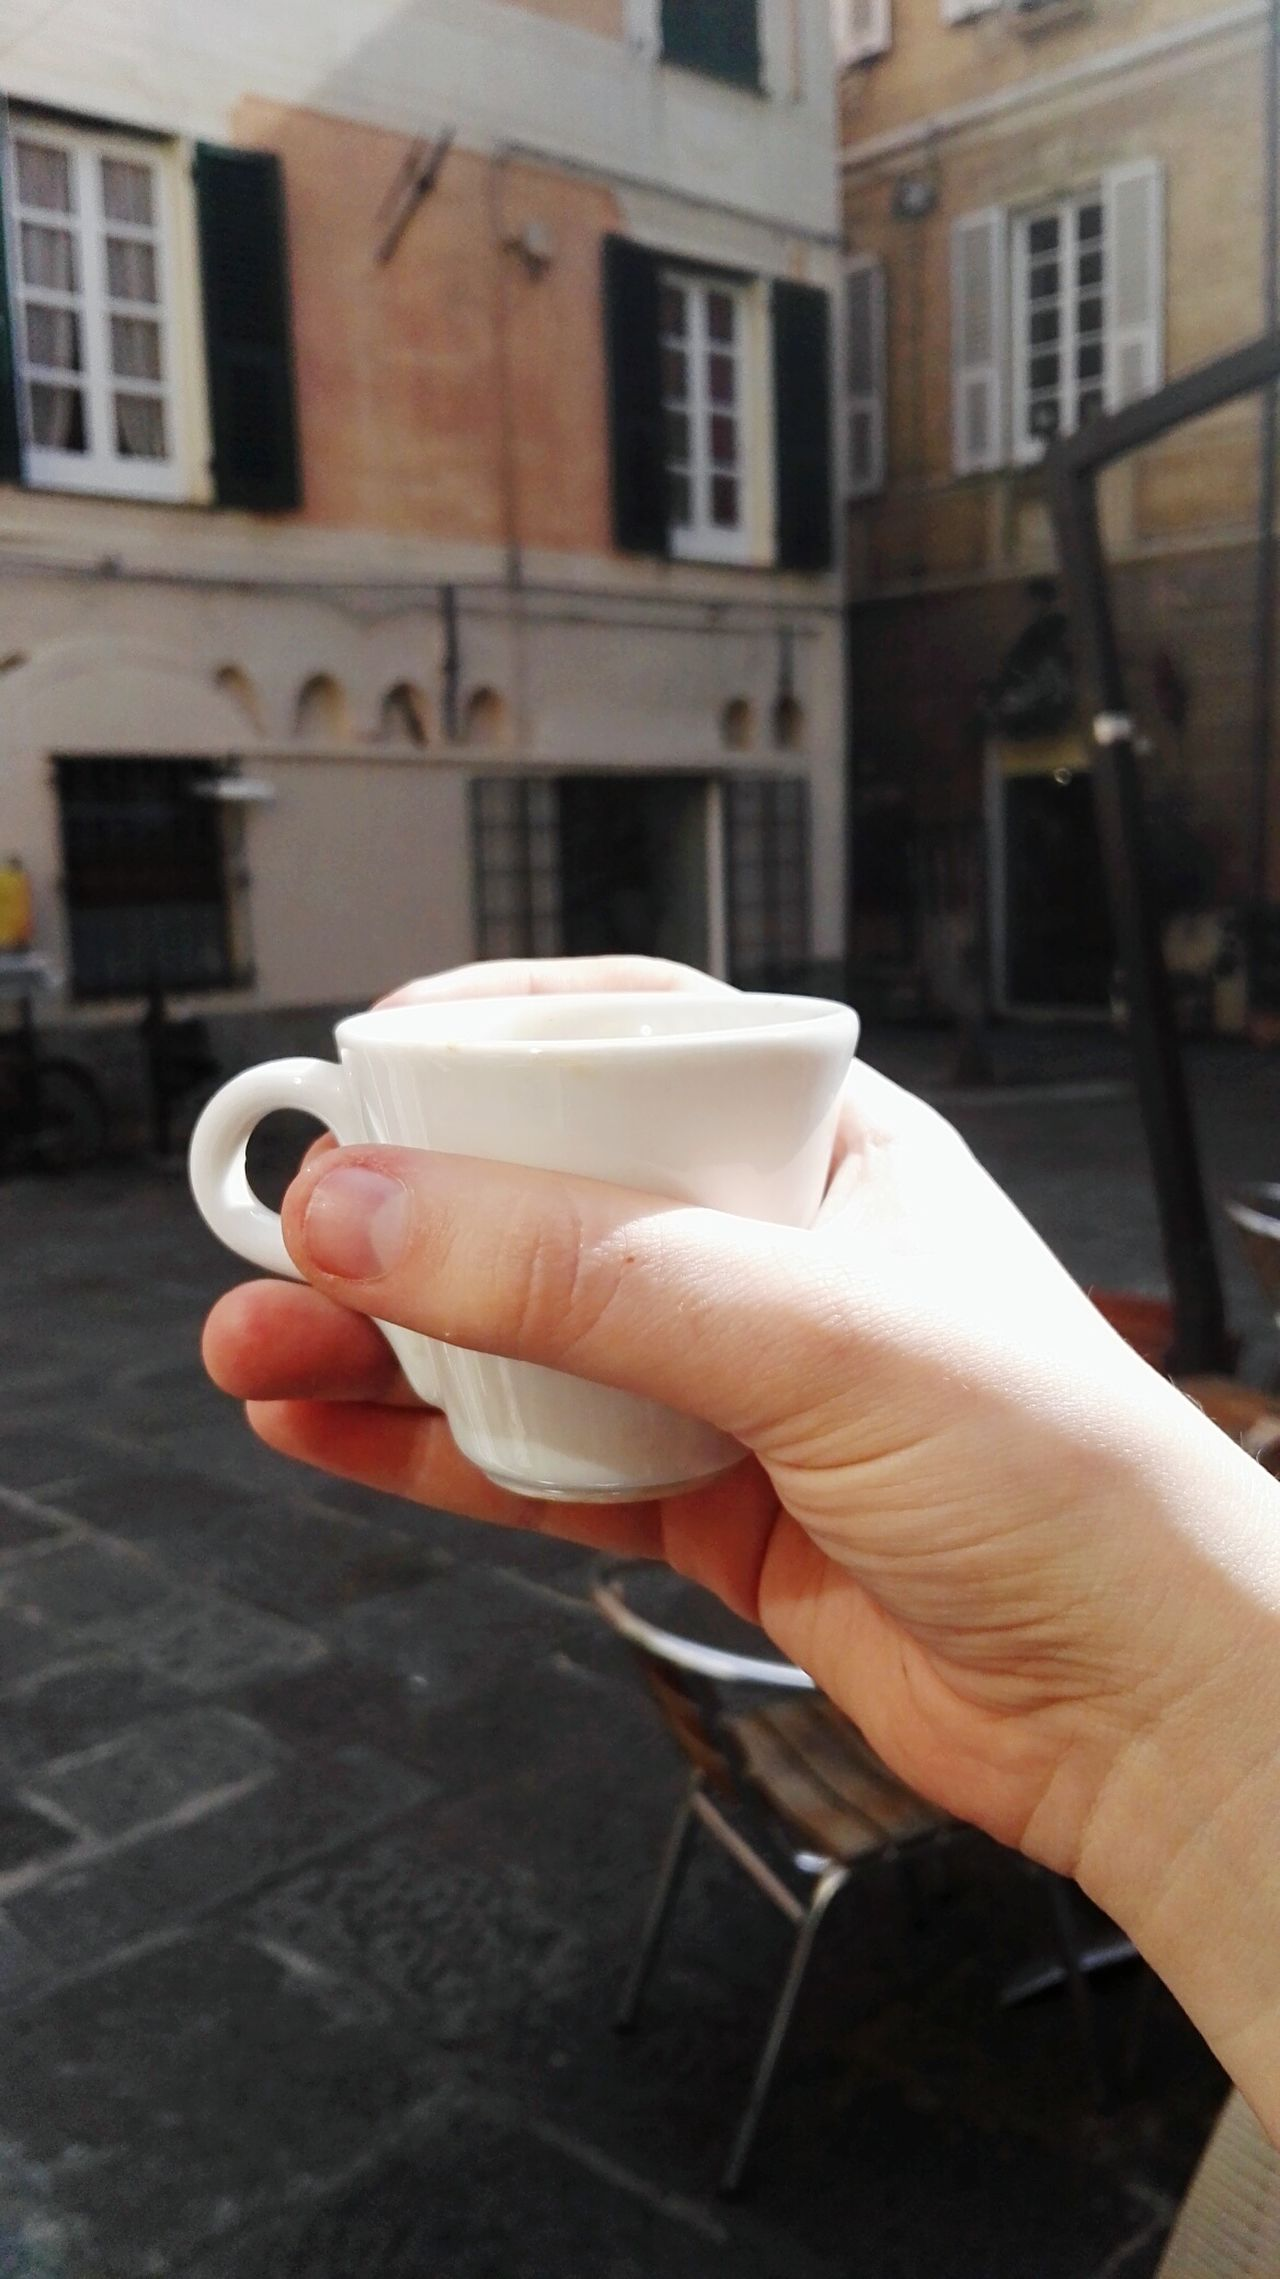 Albenga Architecture Architecture Building Exterior Built Structure Close-up Coffee Cropped Day Espresso Focus On Foreground Holding Human Finger Italy Leisure Activity Lifestyles Men Part Of Person Personal Perspective Street Unrecognizable Person